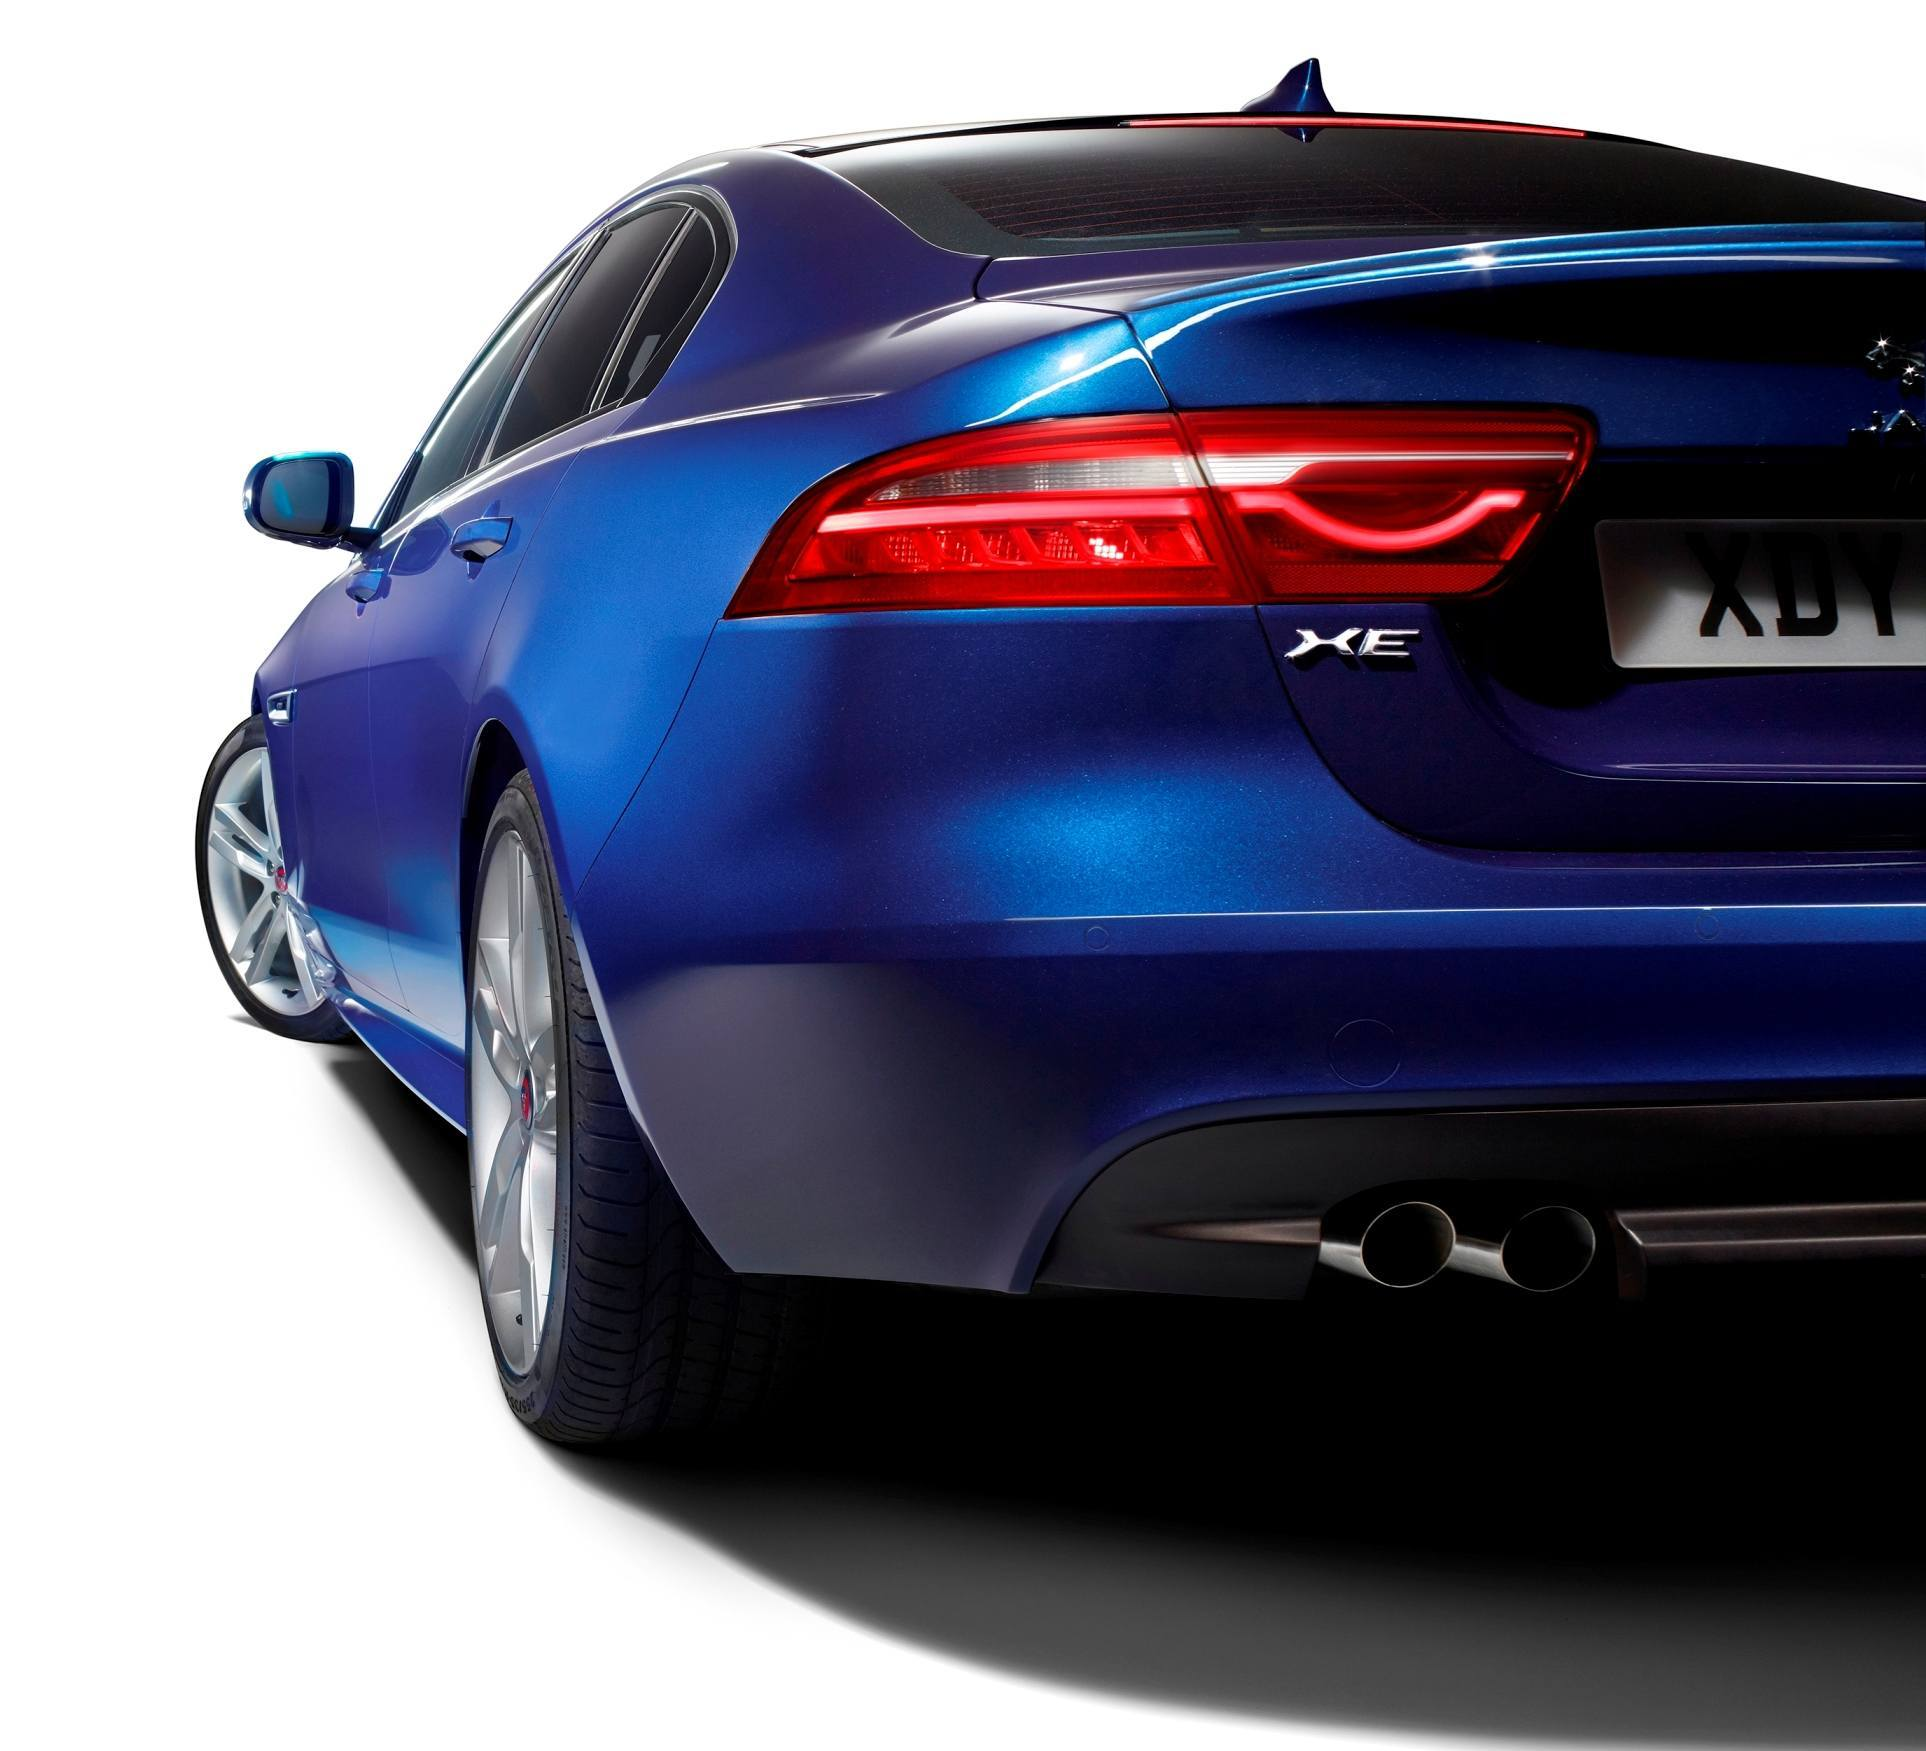 Price Of New Jaguar: Models, Specs And Prices + 75 New Photos